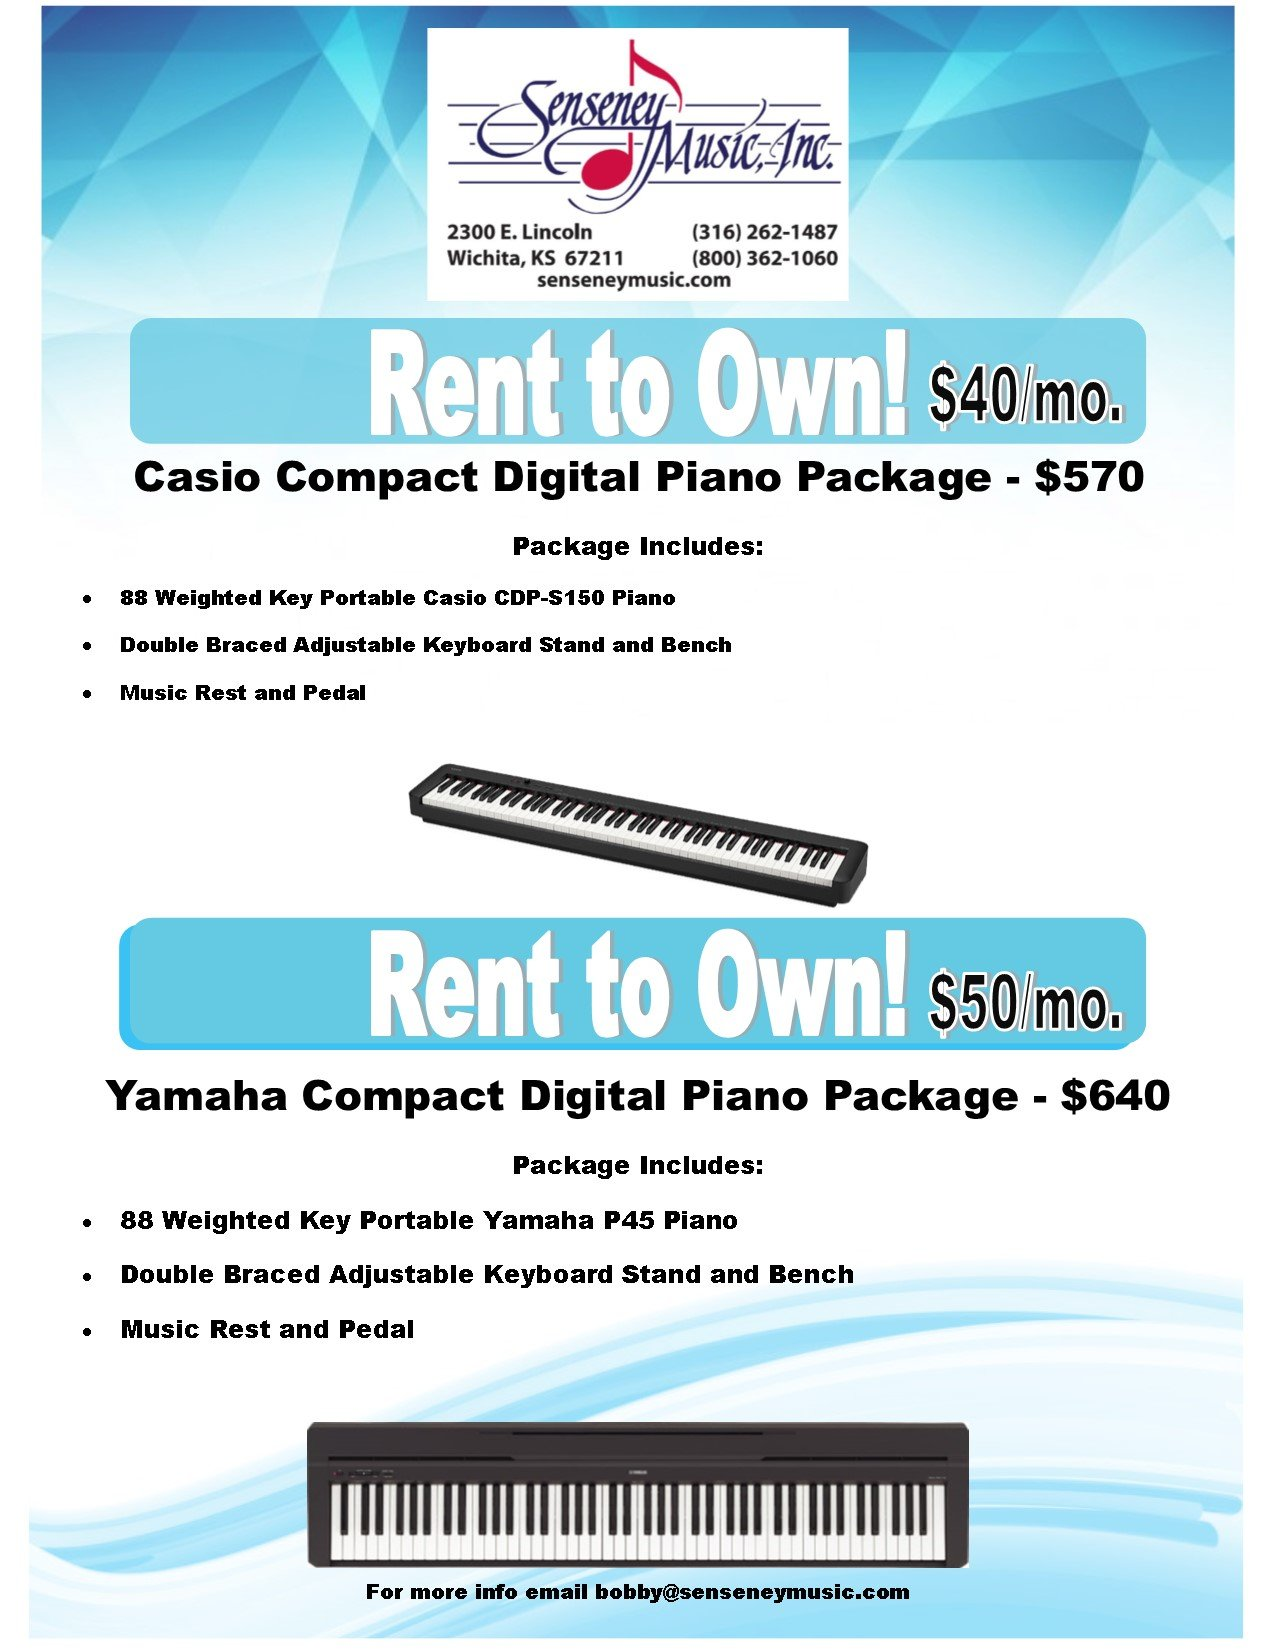 rent to own digital pianos(1)